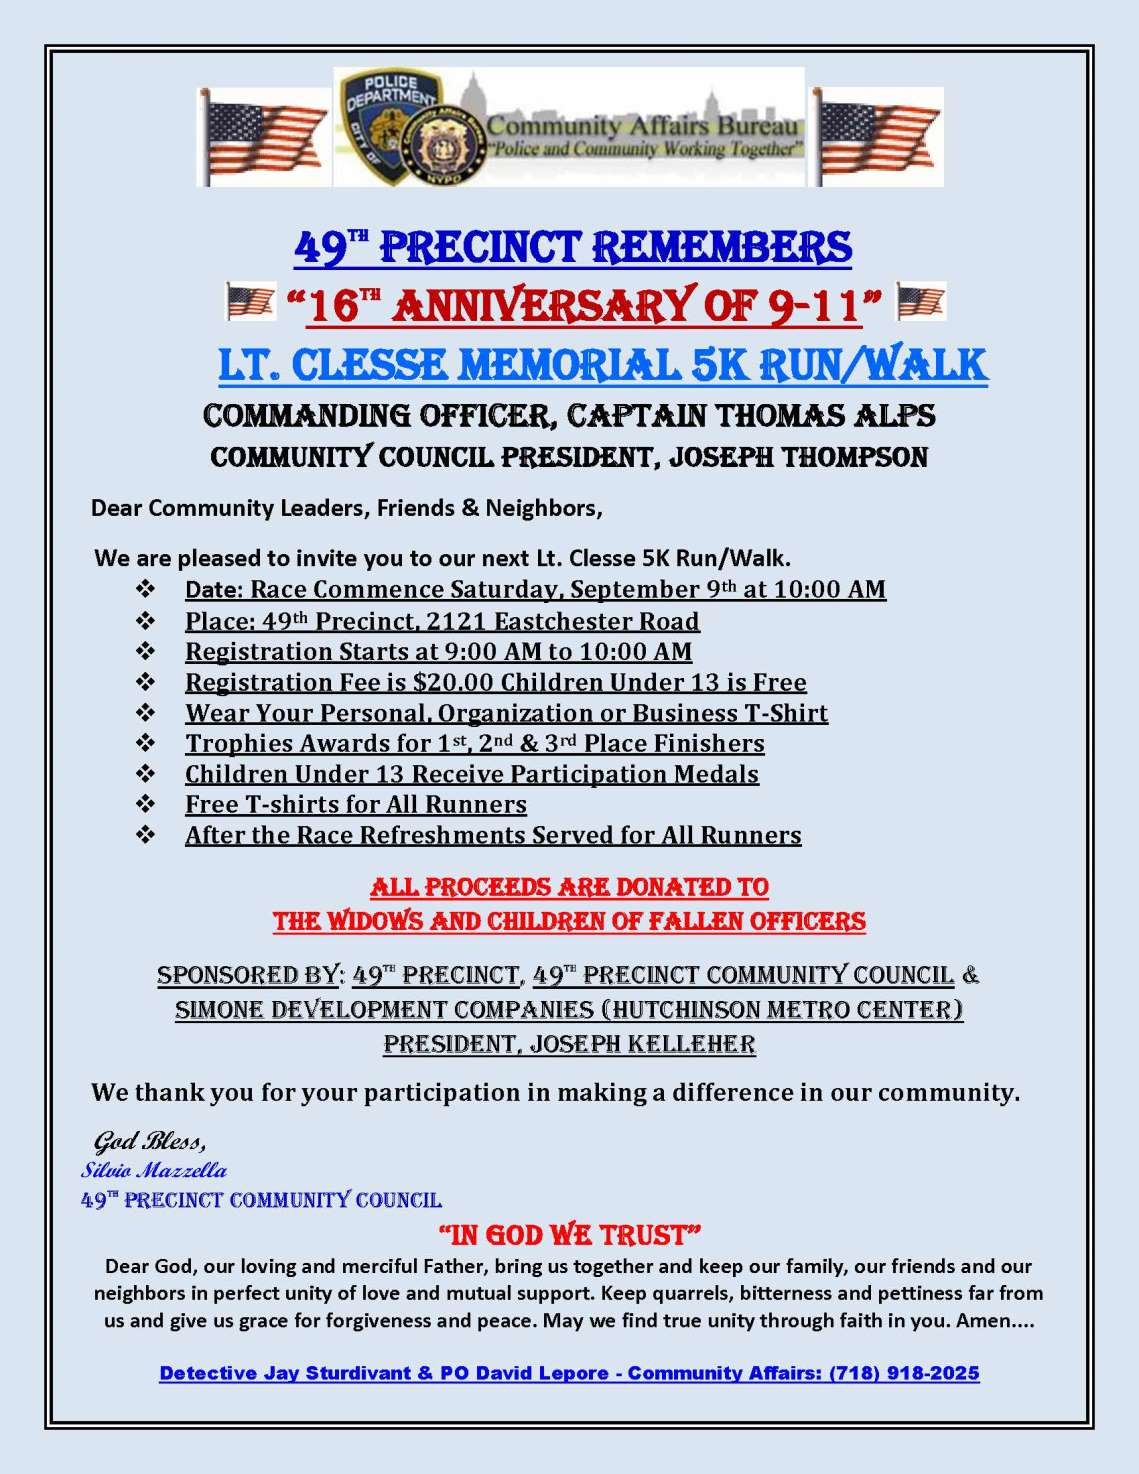 2017 Sept 9 Lt. Clesse 911 Memorial Run